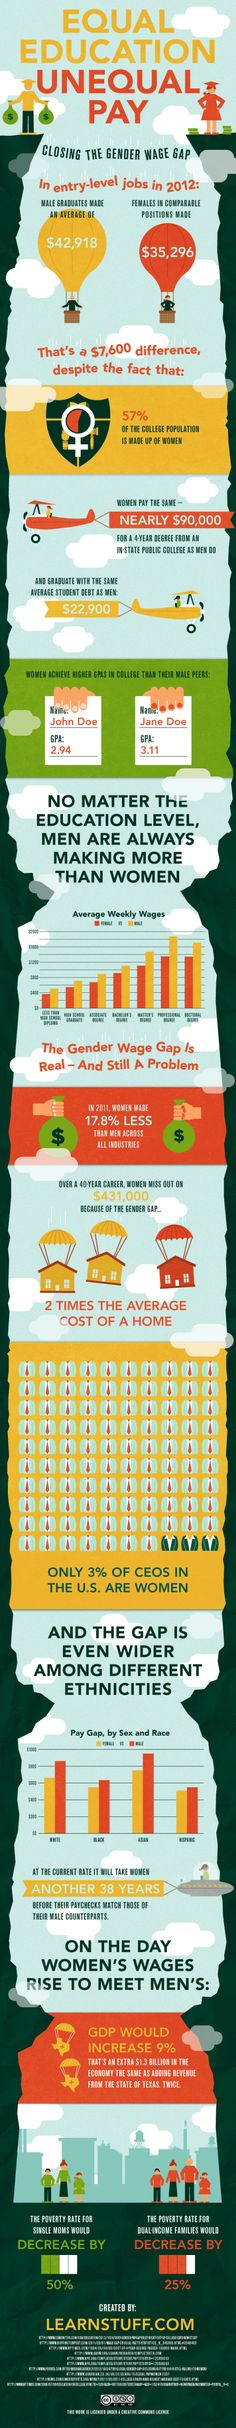 The Gender Wage Gap in USA